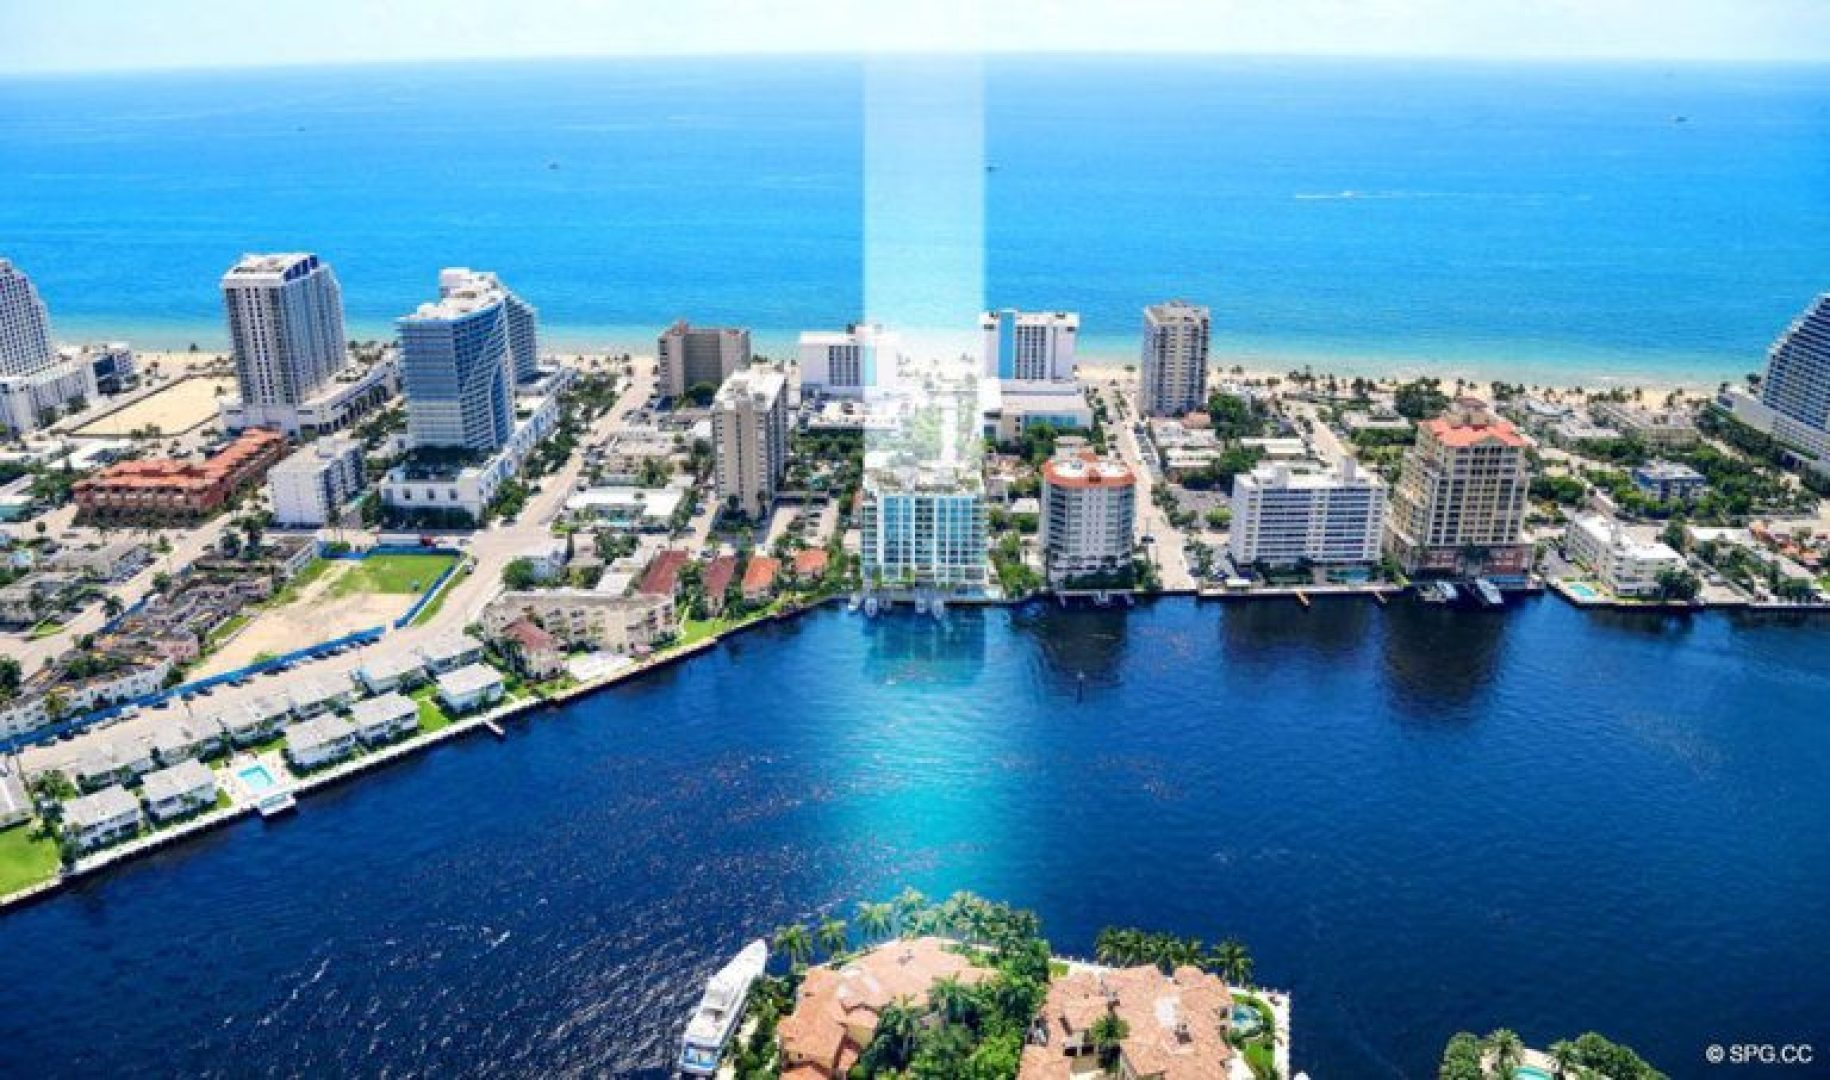 East View of 321 at Water's Edge, Luxury Waterfront Condos in Fort Lauderdale, Florida 33304